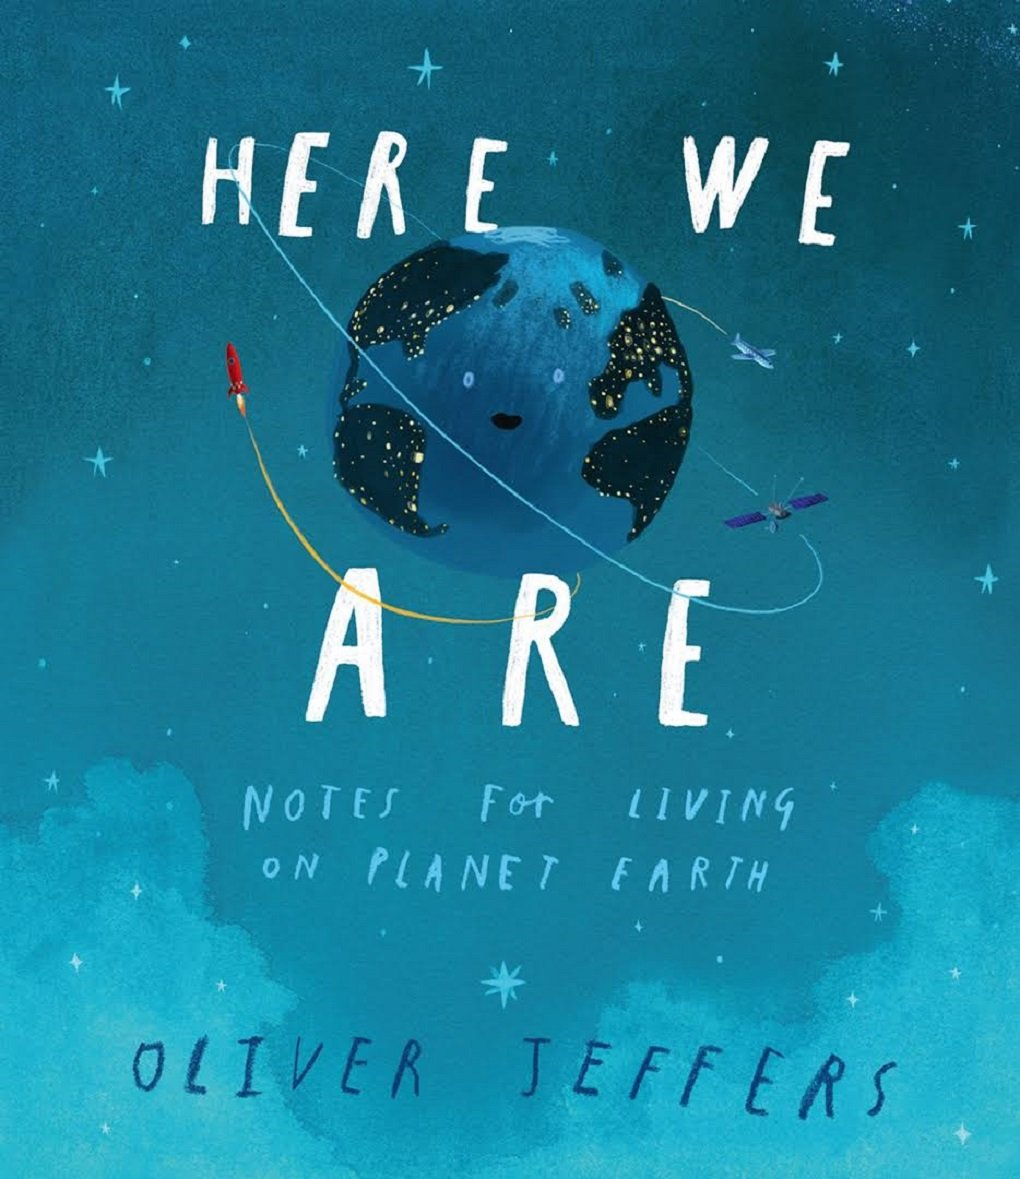 Here We Are: Notes for Living on Planet Earth: Amazon.co.uk: Jeffers, Oliver, Jeffers, Oliver: Books